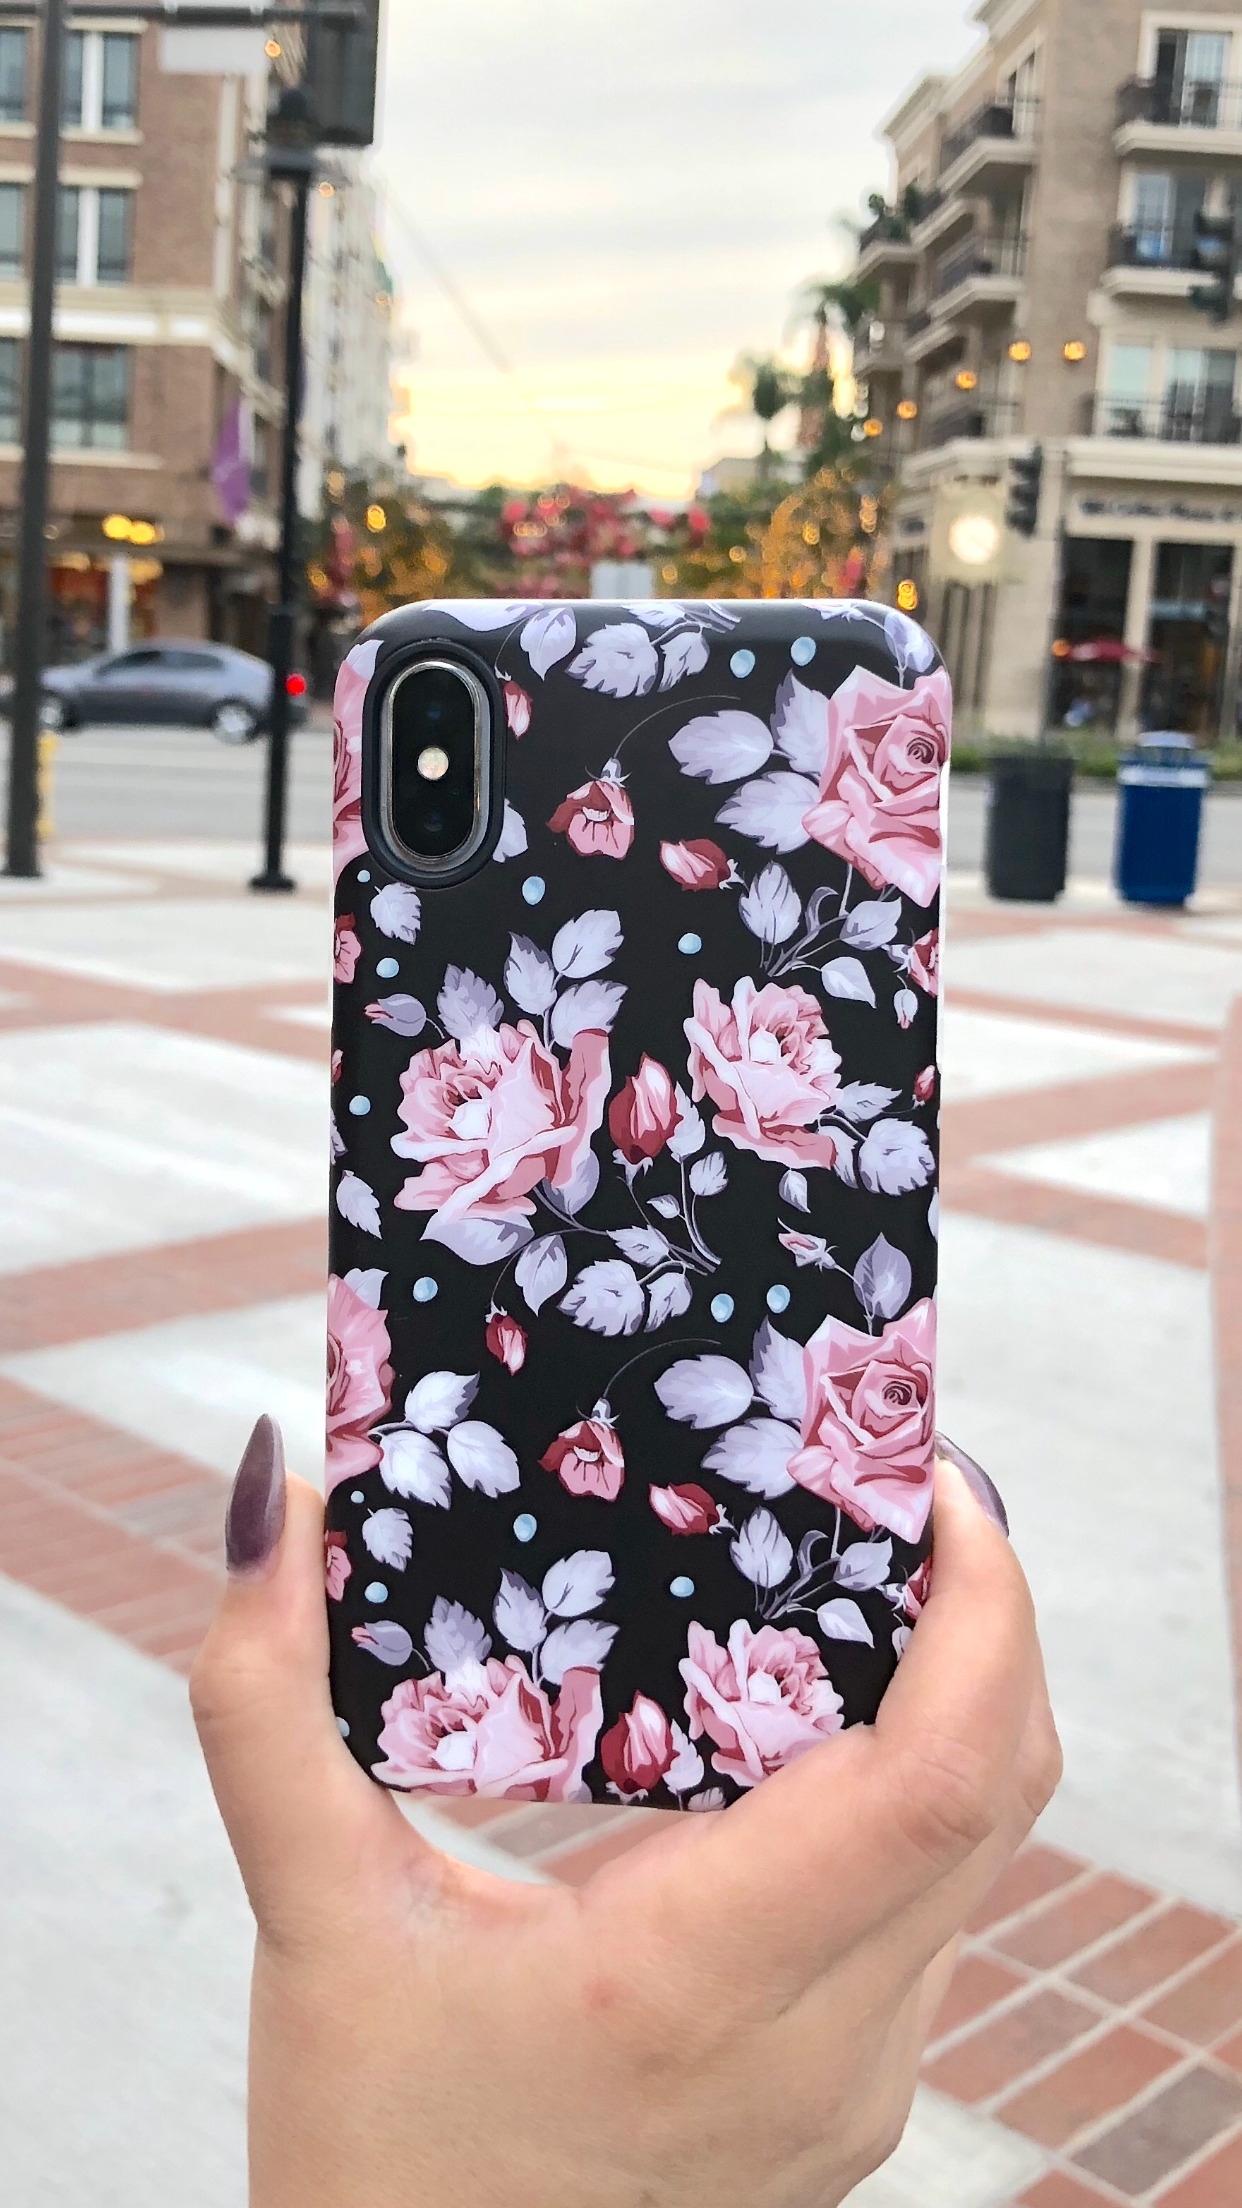 9ee28bed422 Blush Rose floral case for iPhone X, iPhone 8 Plus / 7 Plus & iPhone 8 / 7  from Elemental Cases. Design. Protection. Love.